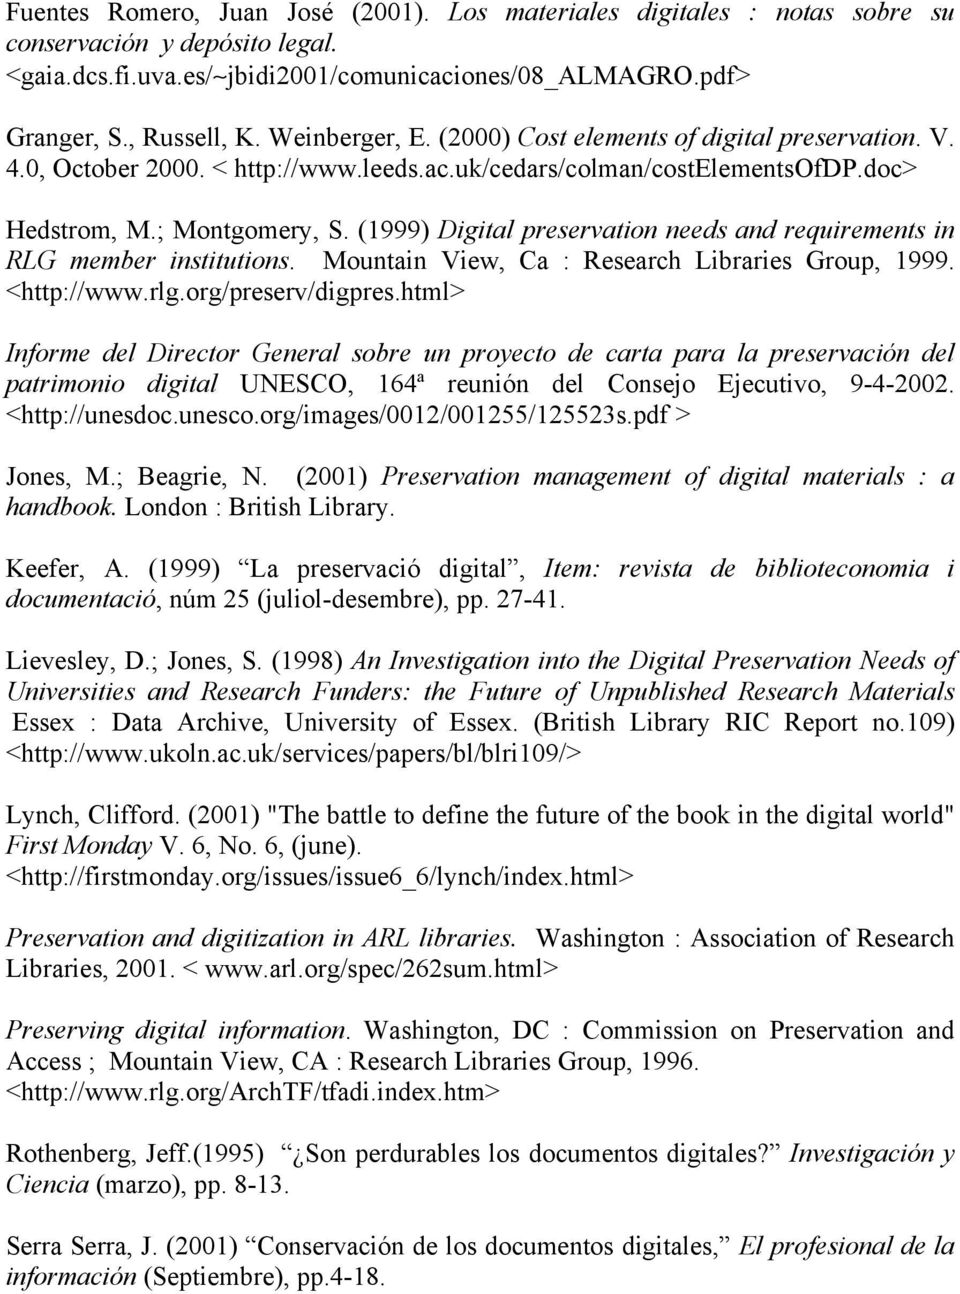 (1999) Digital preservation needs and requirements in RLG member institutions. Mountain View, Ca : Research Libraries Group, 1999. <http://www.rlg.org/preserv/digpres.